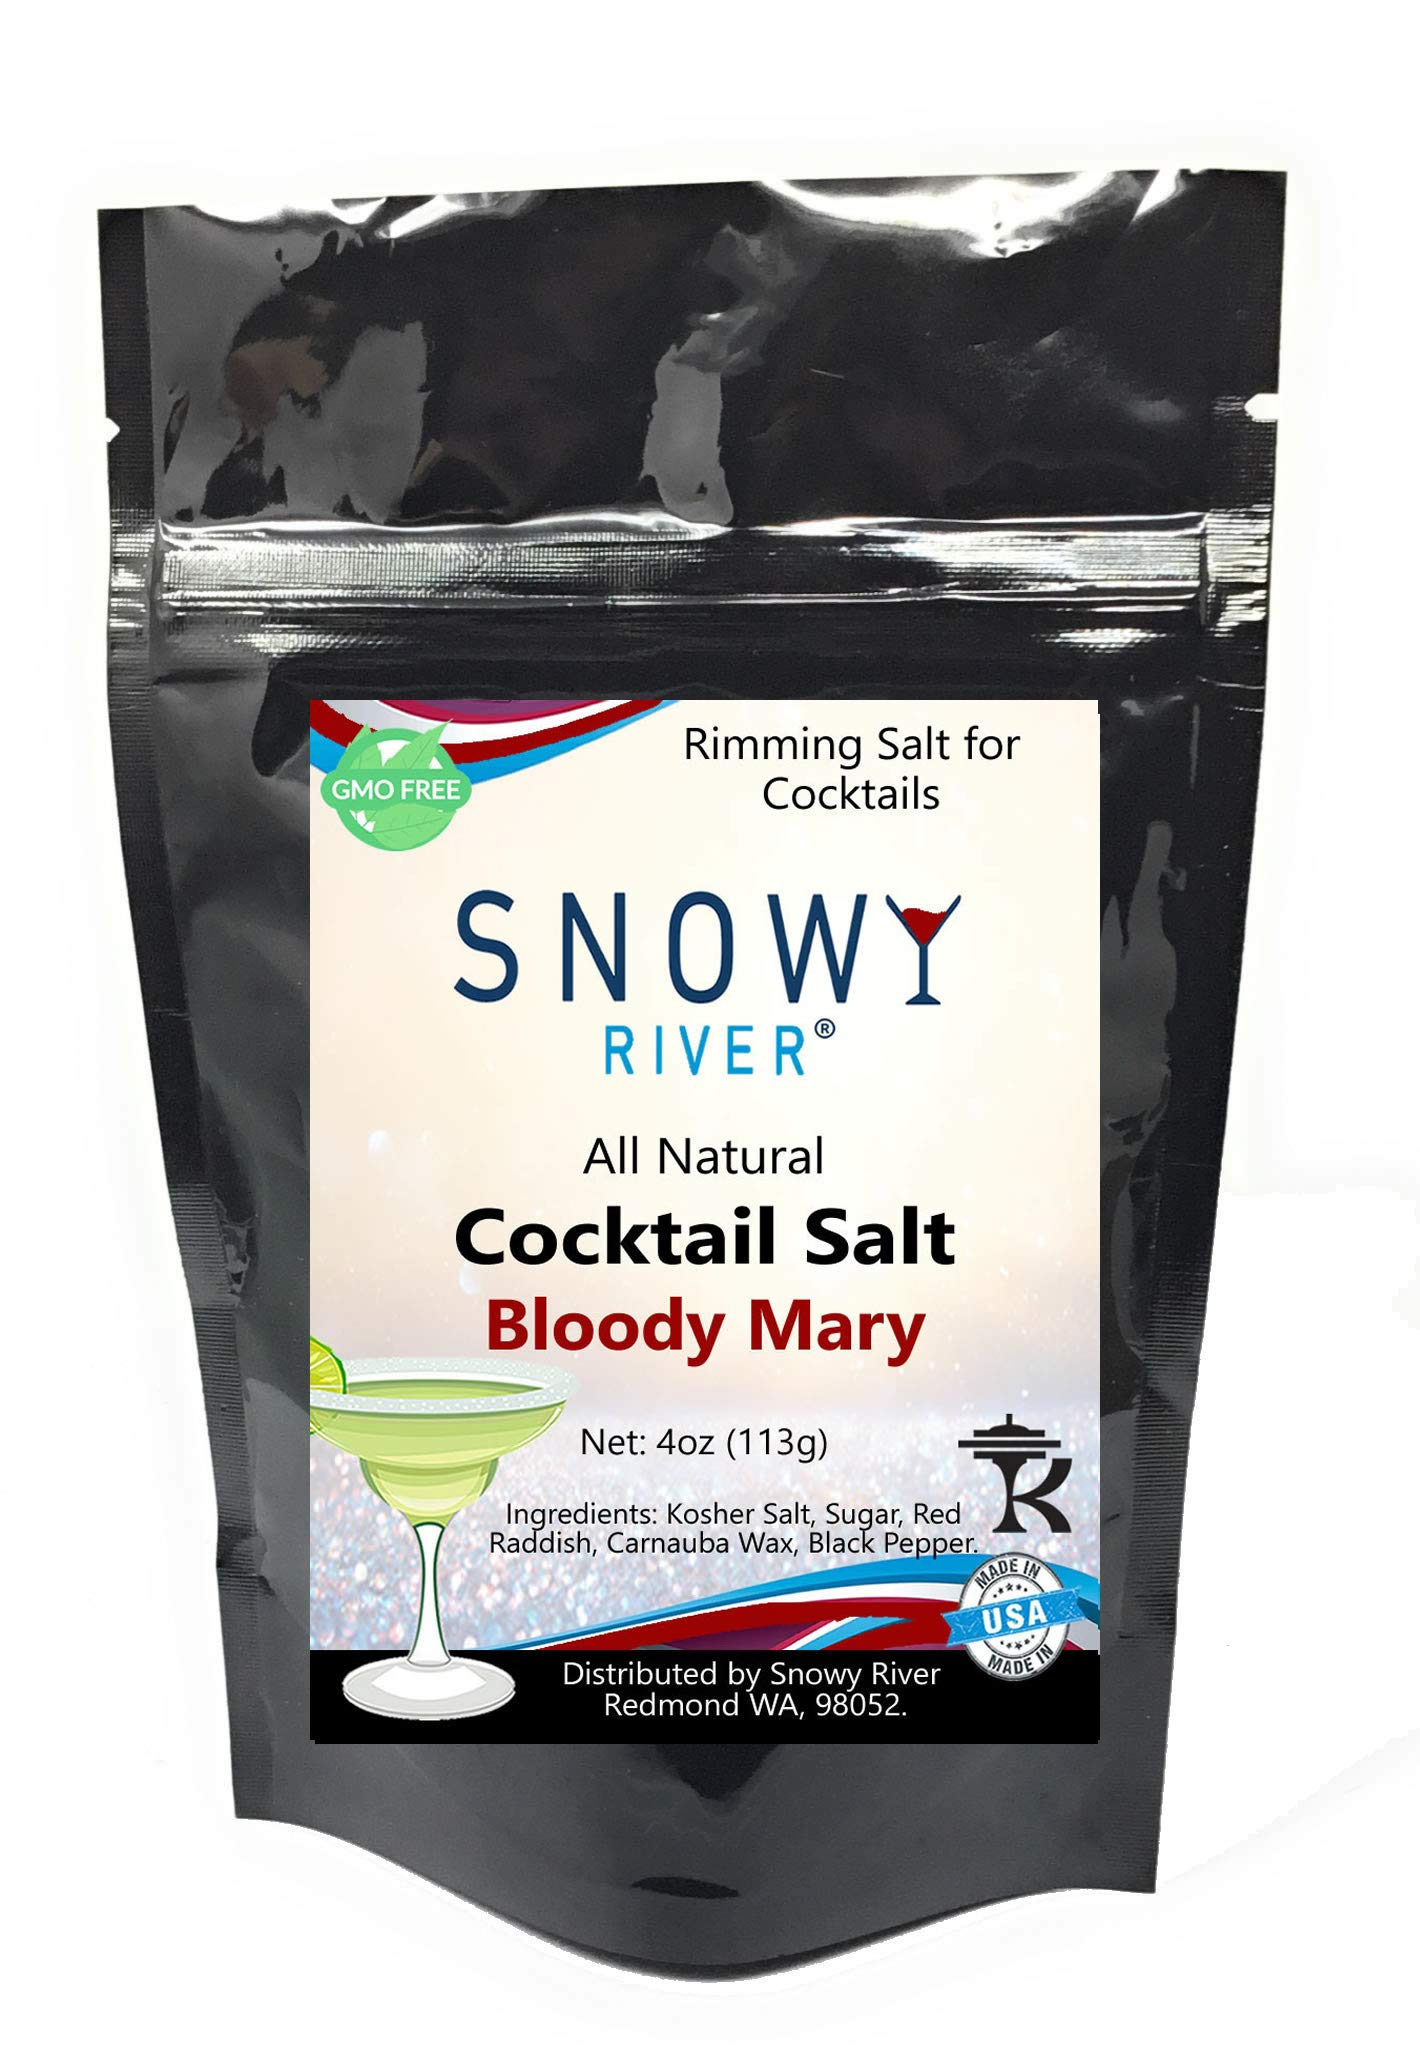 Snowy River Bloody Mary Cocktail Salt Mix - All Natural Pepper and Salt Cocktail Rimmer (1x5lb Bag) by Snowy River Cocktails (Image #4)